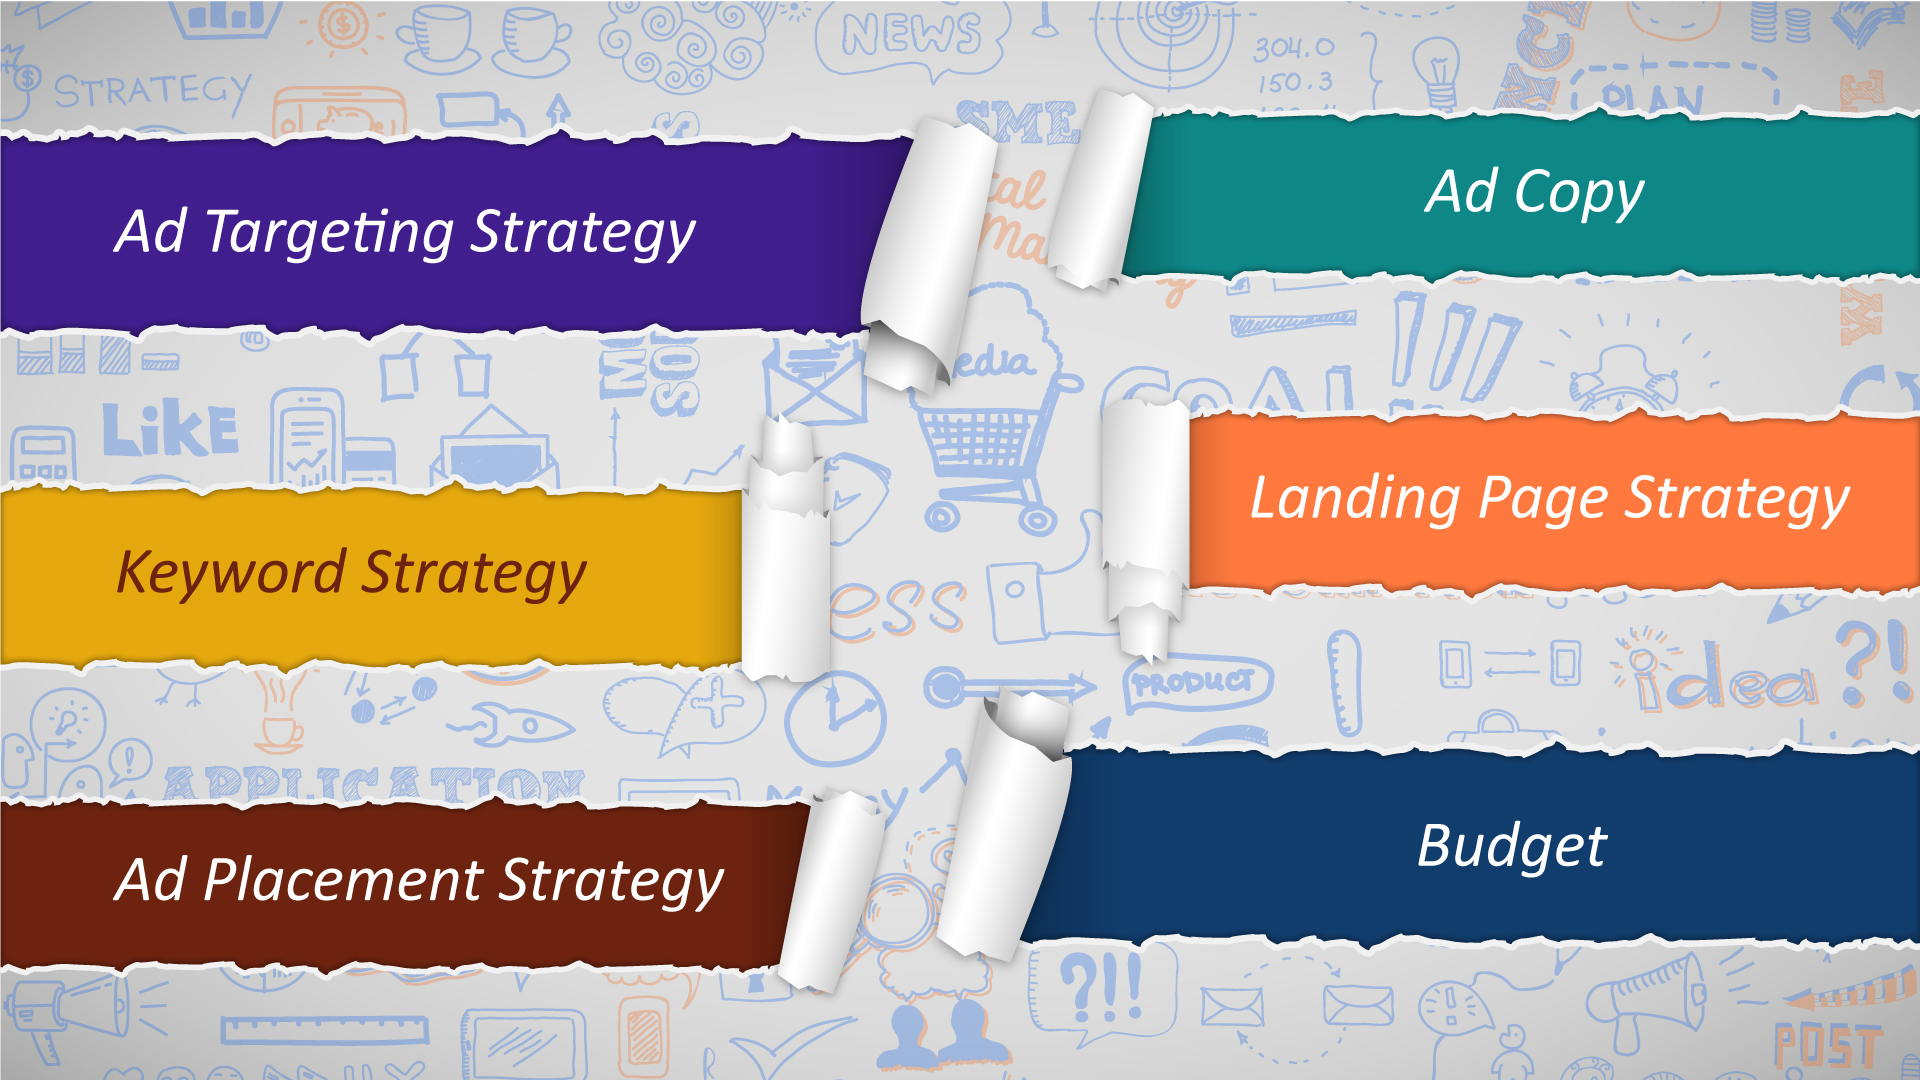 Strategies To Be Followed To Launch A Successful Adwords Campaign